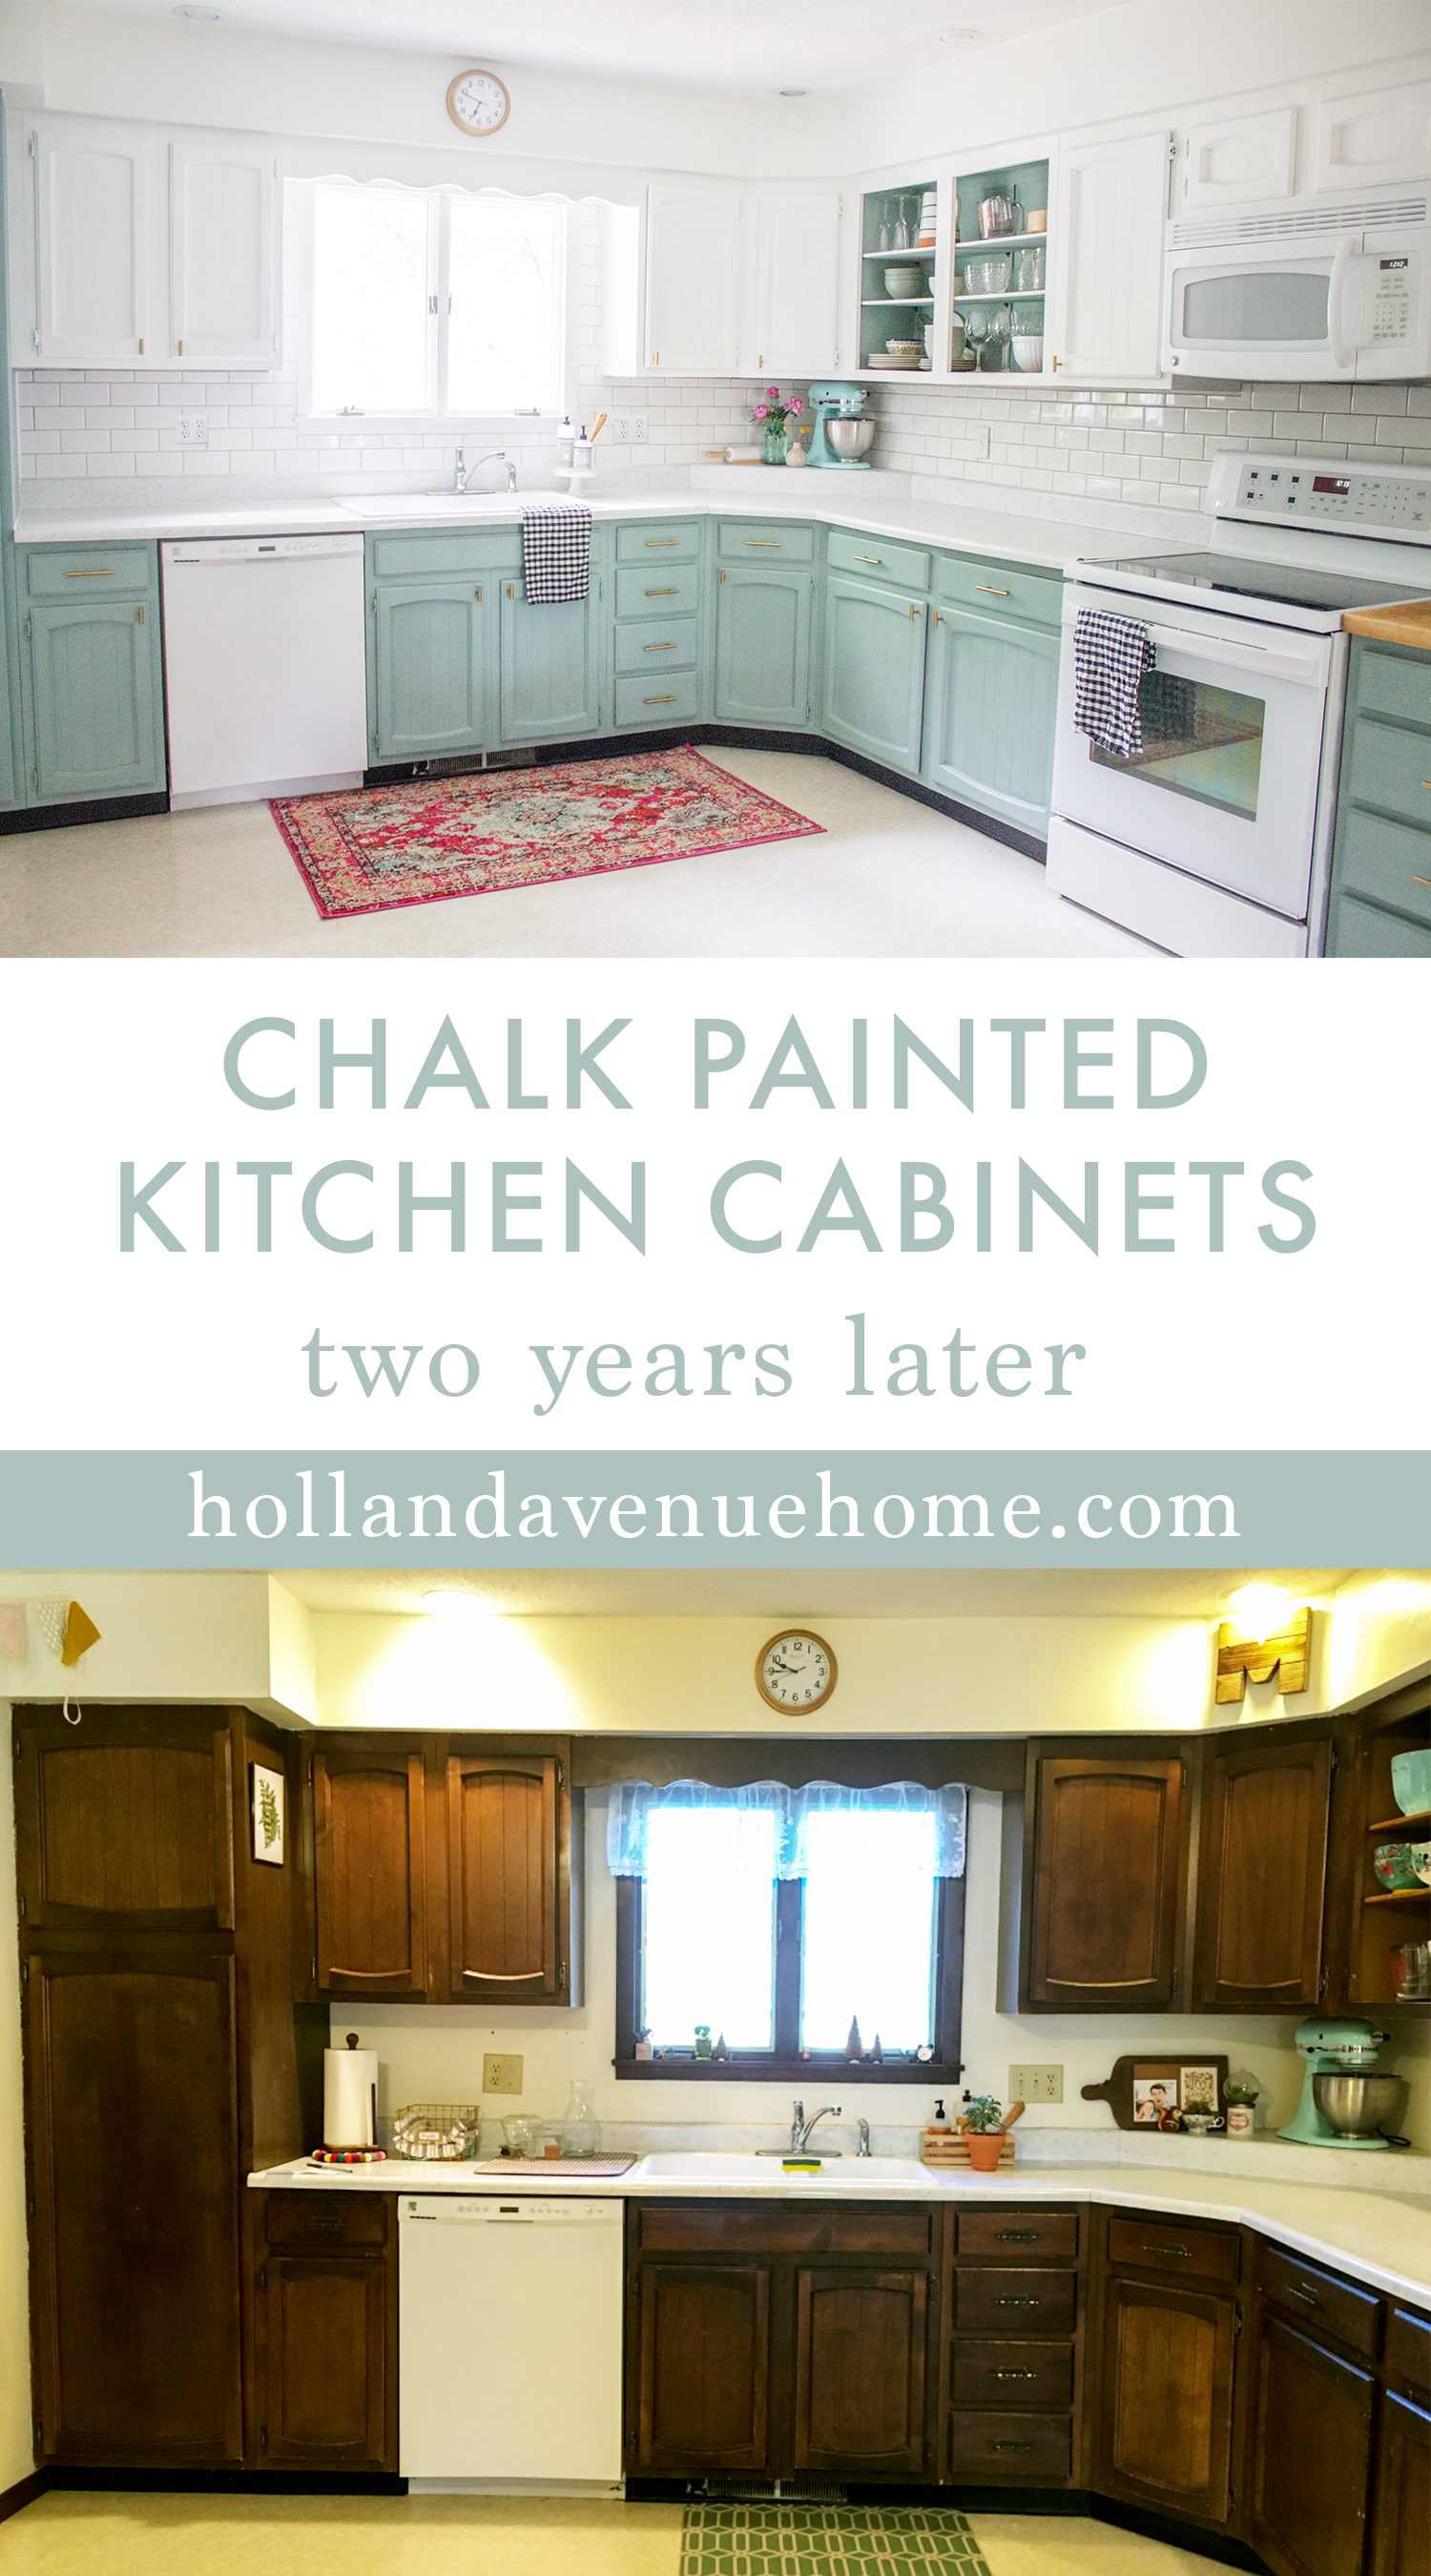 Images Of Painted Kitchen Cabinets Chalk Painted Kitchen Cabinets Two Years Later